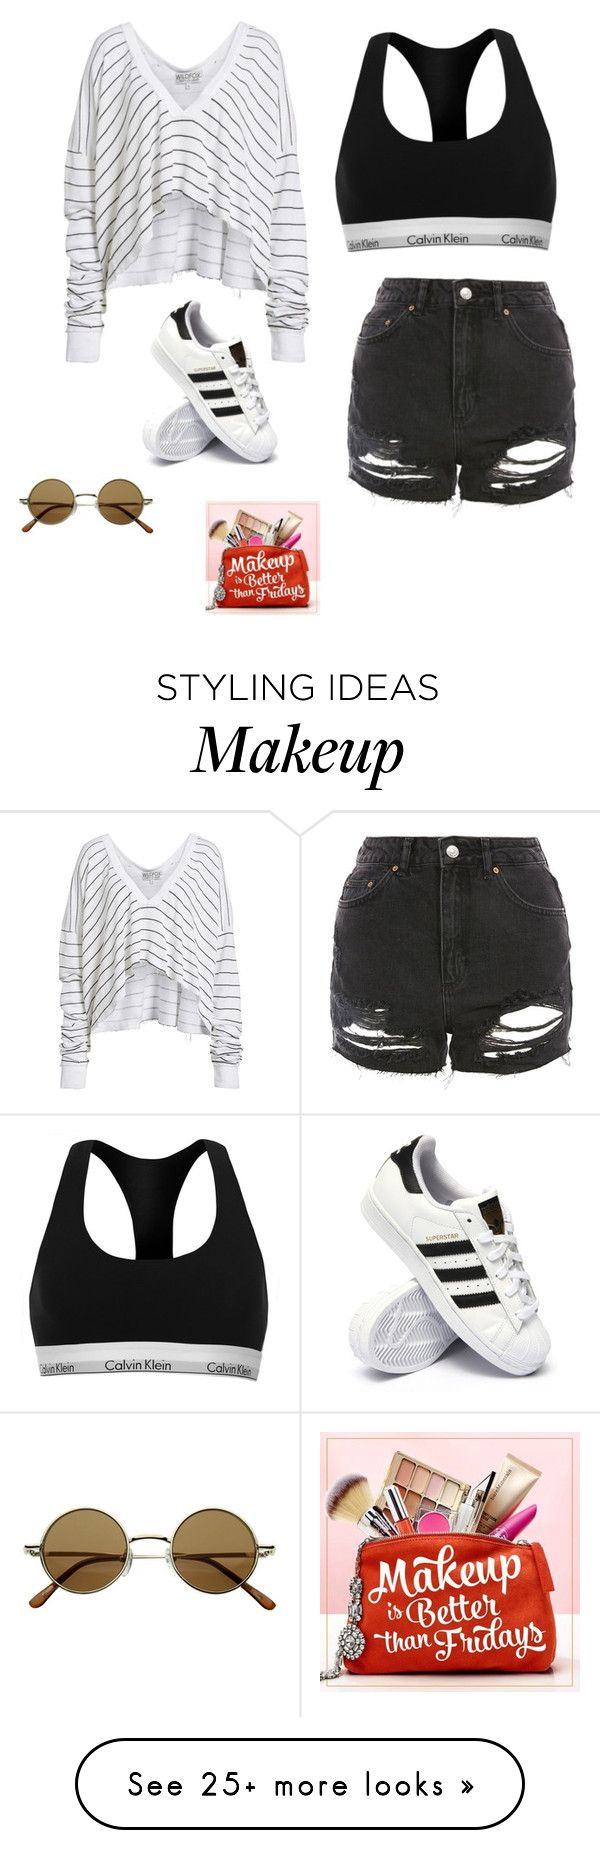 """Untitled #117"" by jellyfish12345 on Polyvore featuring Wildfox, Calvin Klein, Topshop, adidas, ULTA and jellyfish12345"